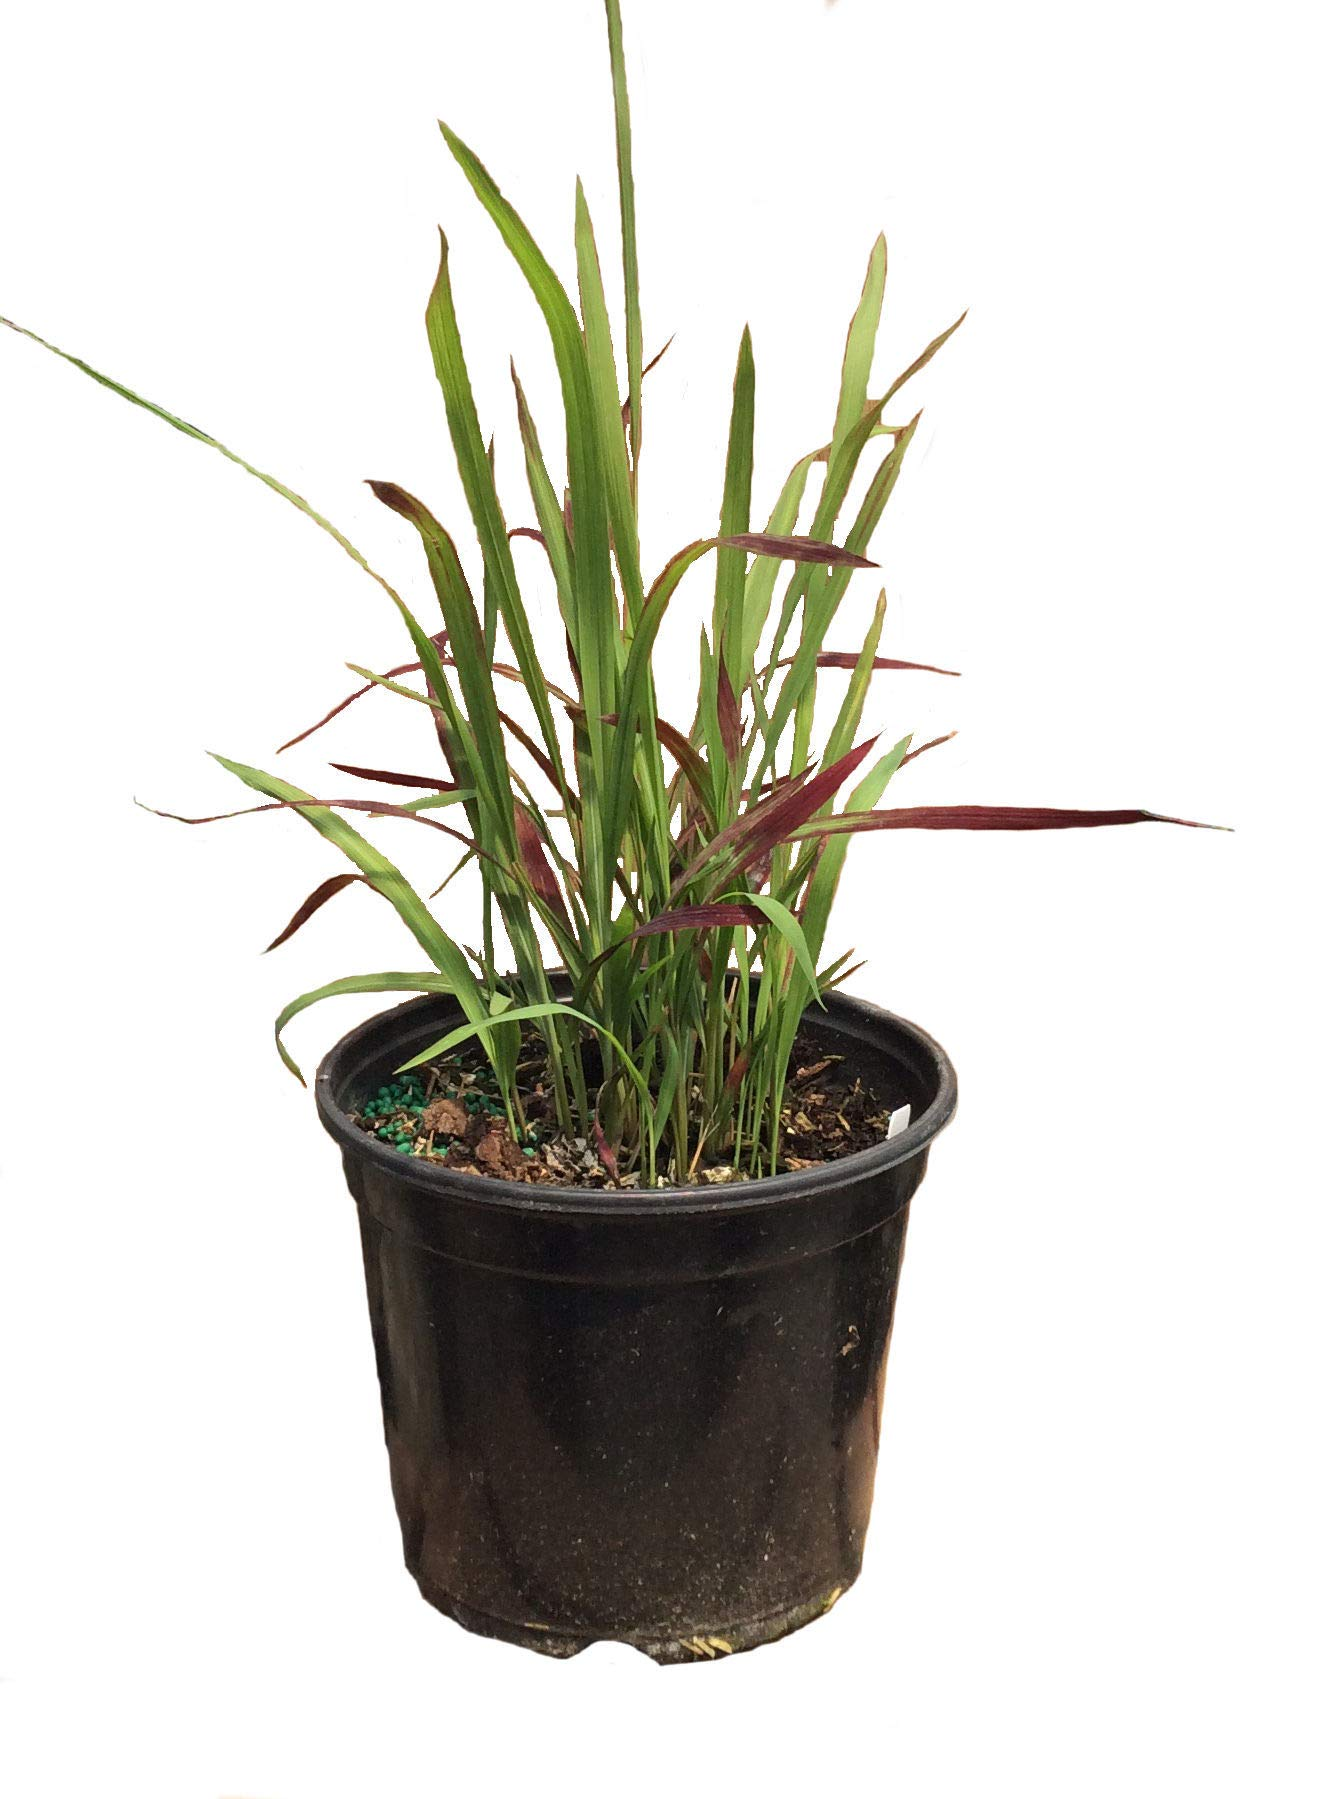 Japanese Blood Grass Red Baron in 1 Gallon pot (Red/Green)